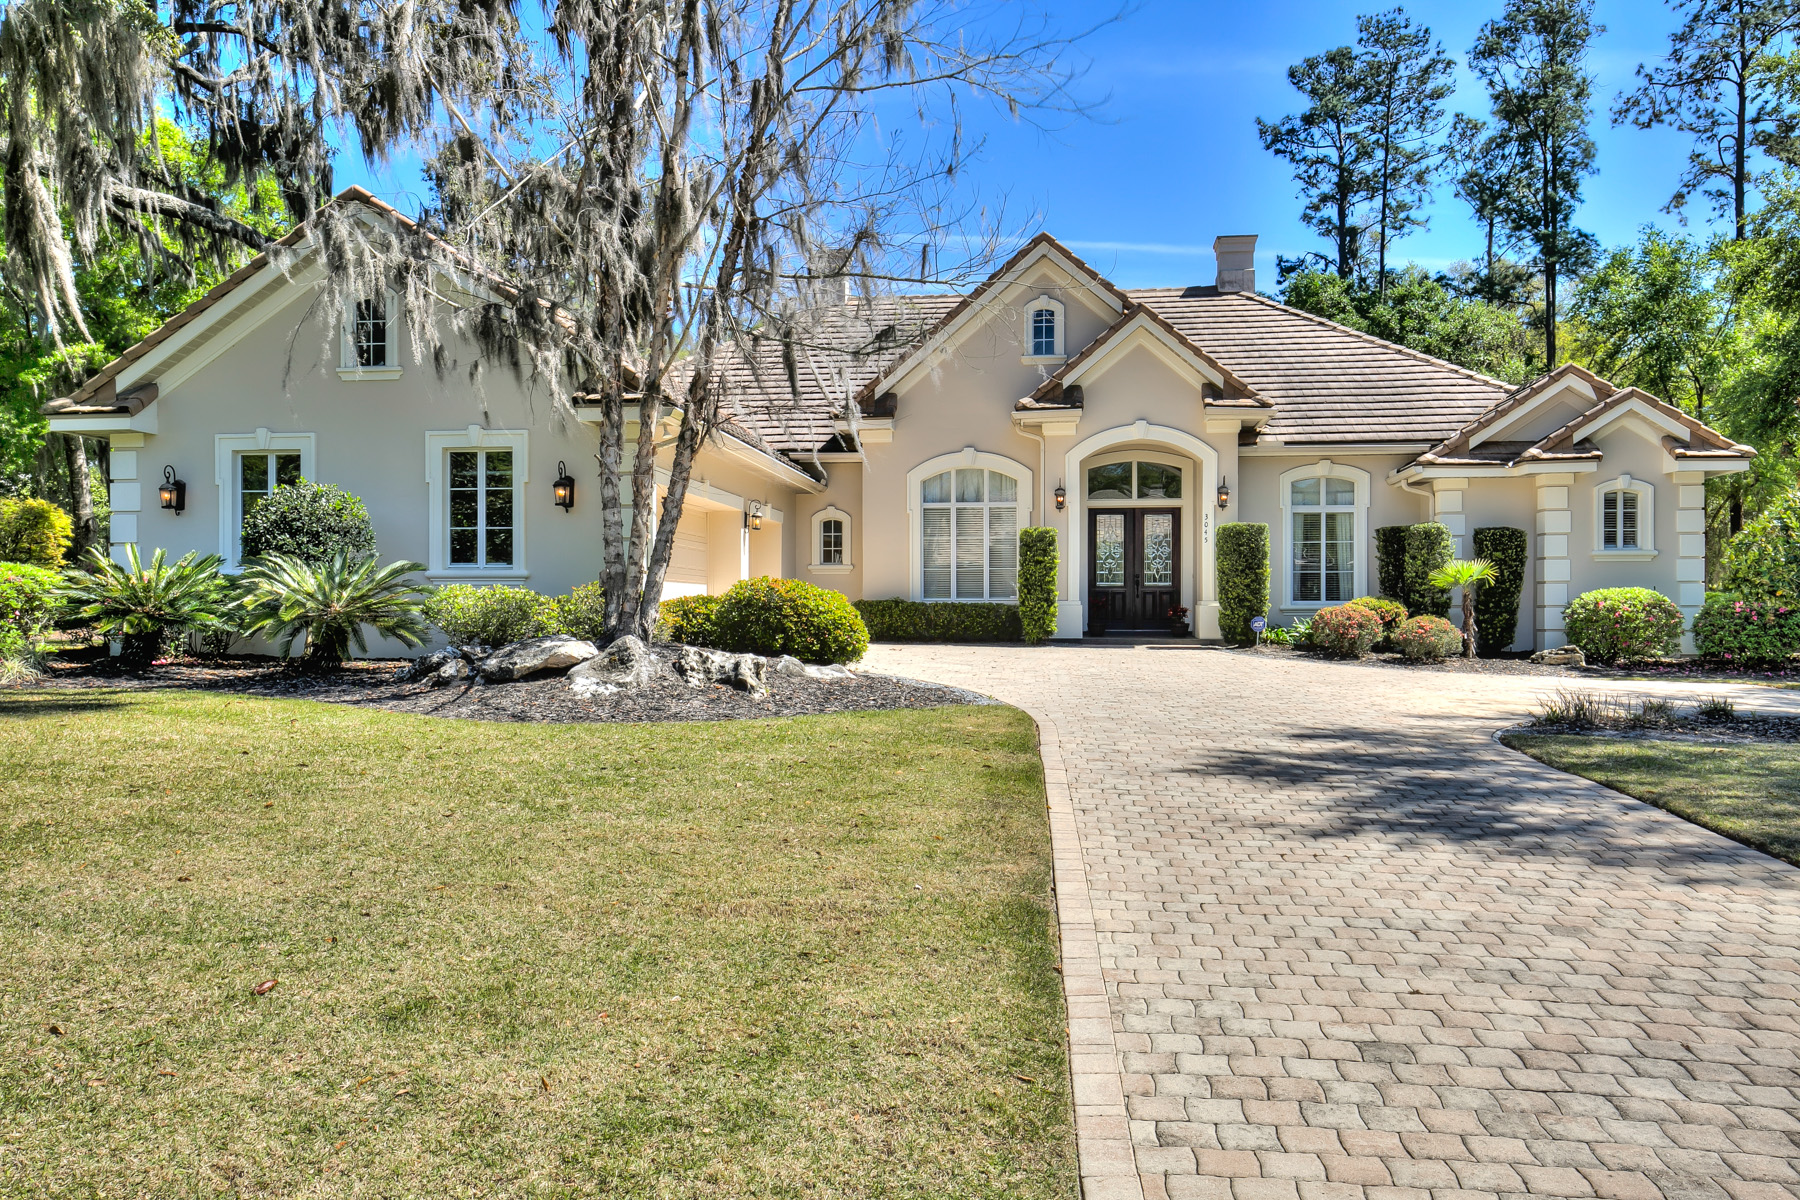 3100 sq ft Ocala Luxury Home - OHP3380